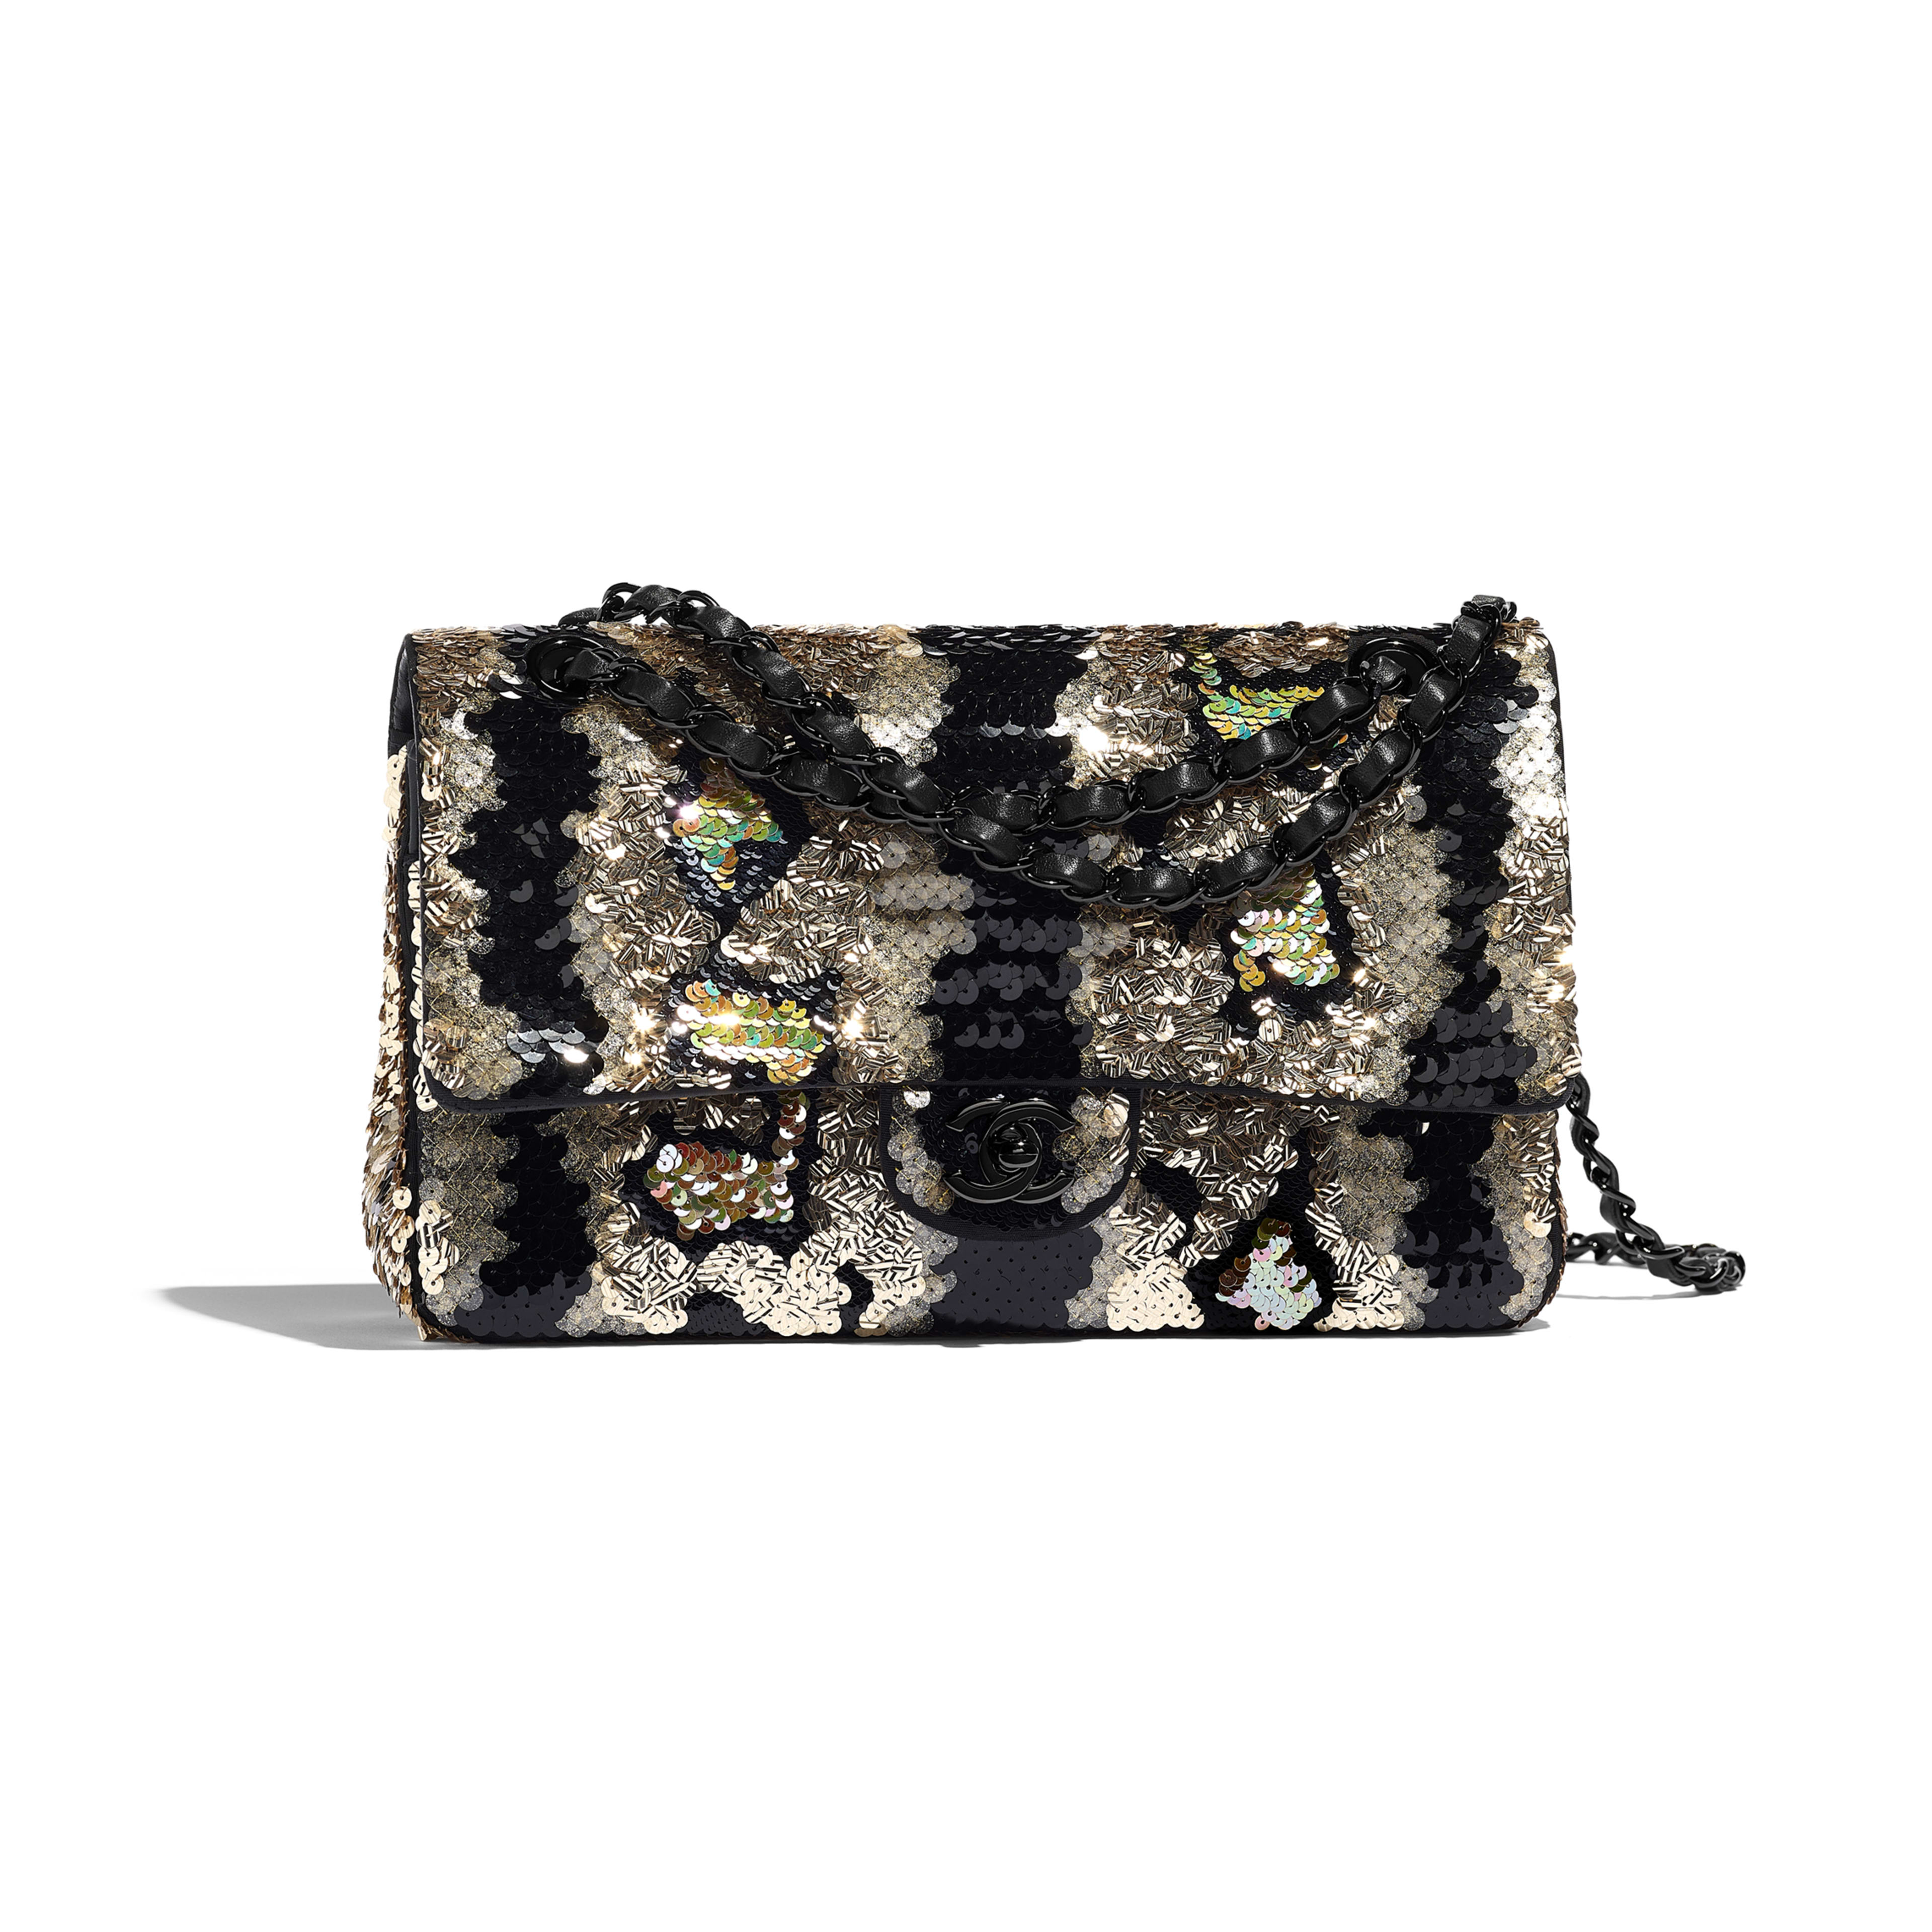 Classic Handbag - Gold & Black - Sequins & Black Metal - Default view - see full sized version